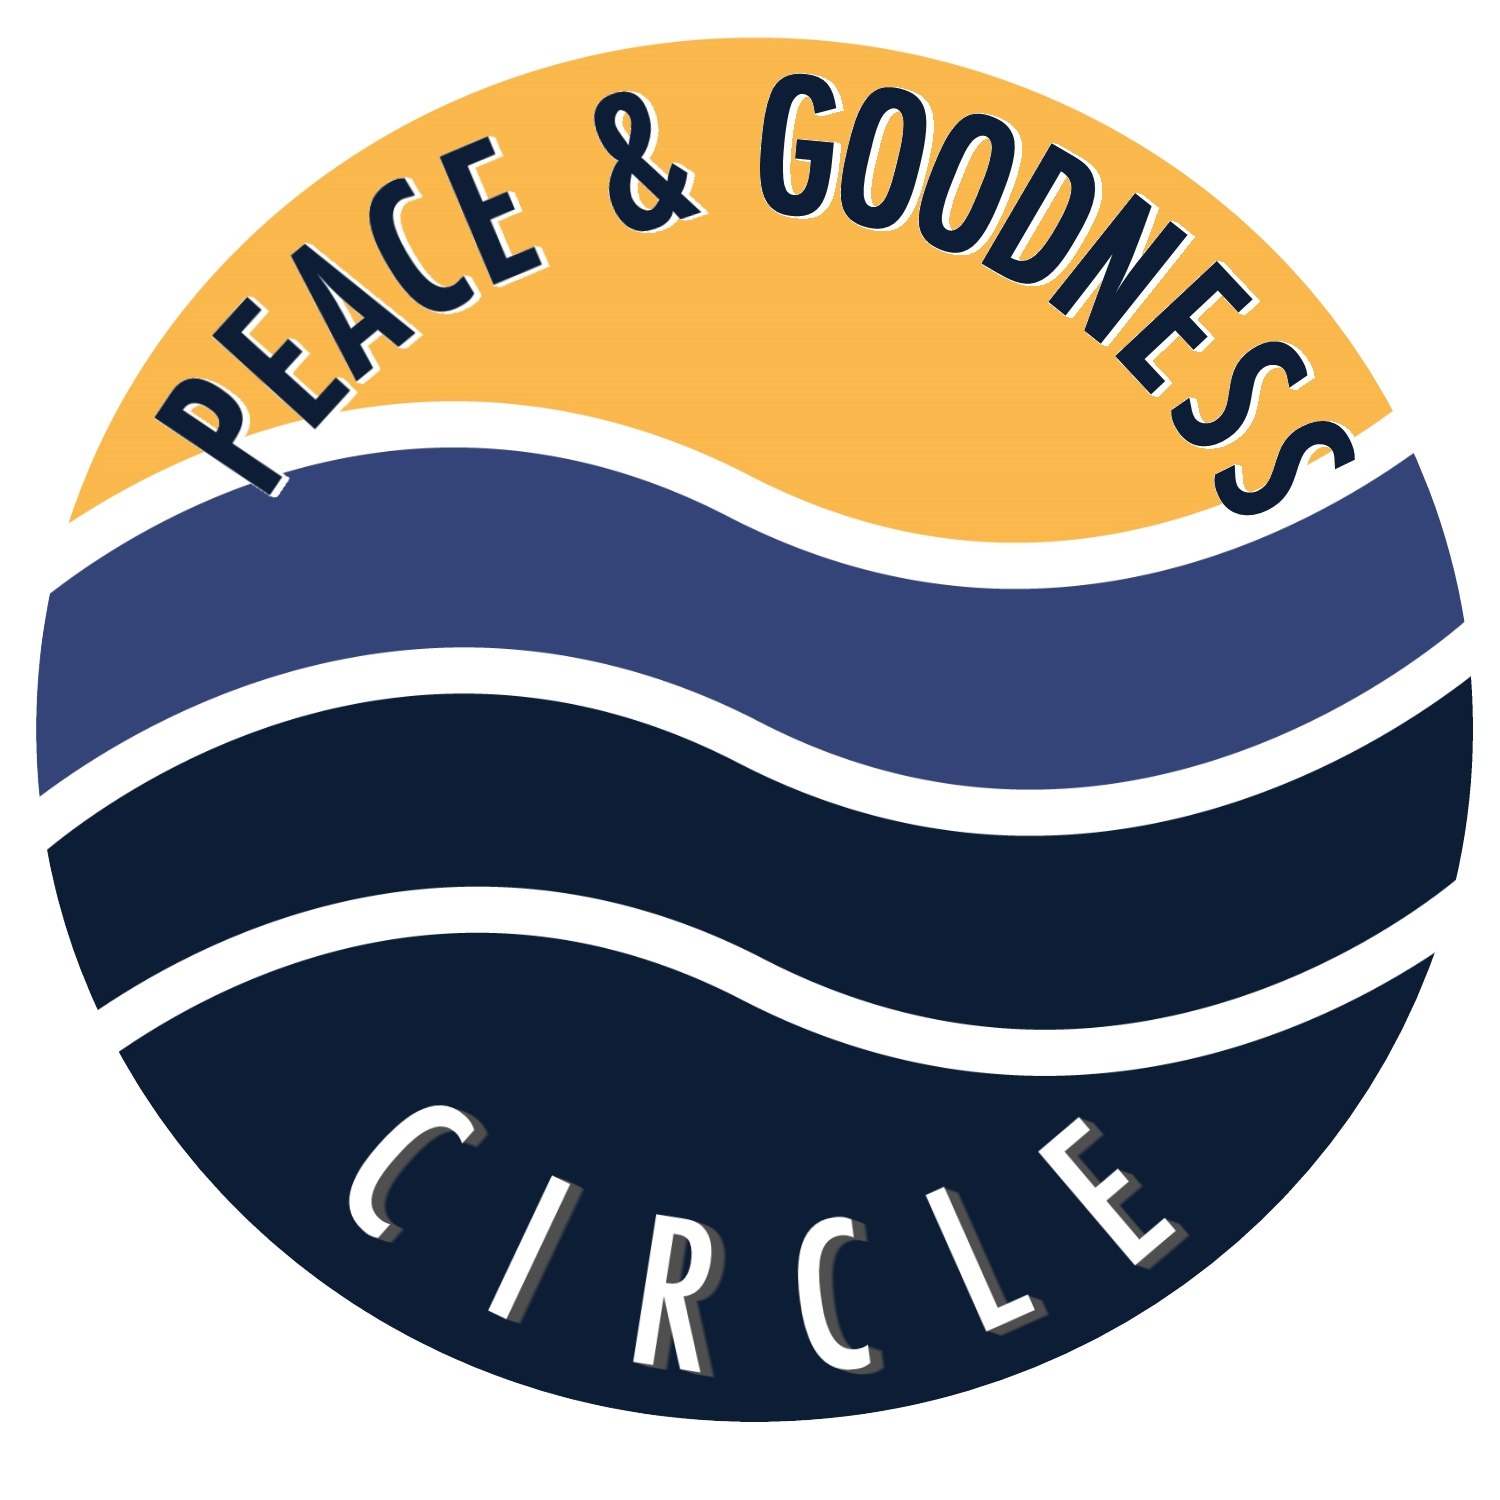 Peace and goodness circle image.jpg